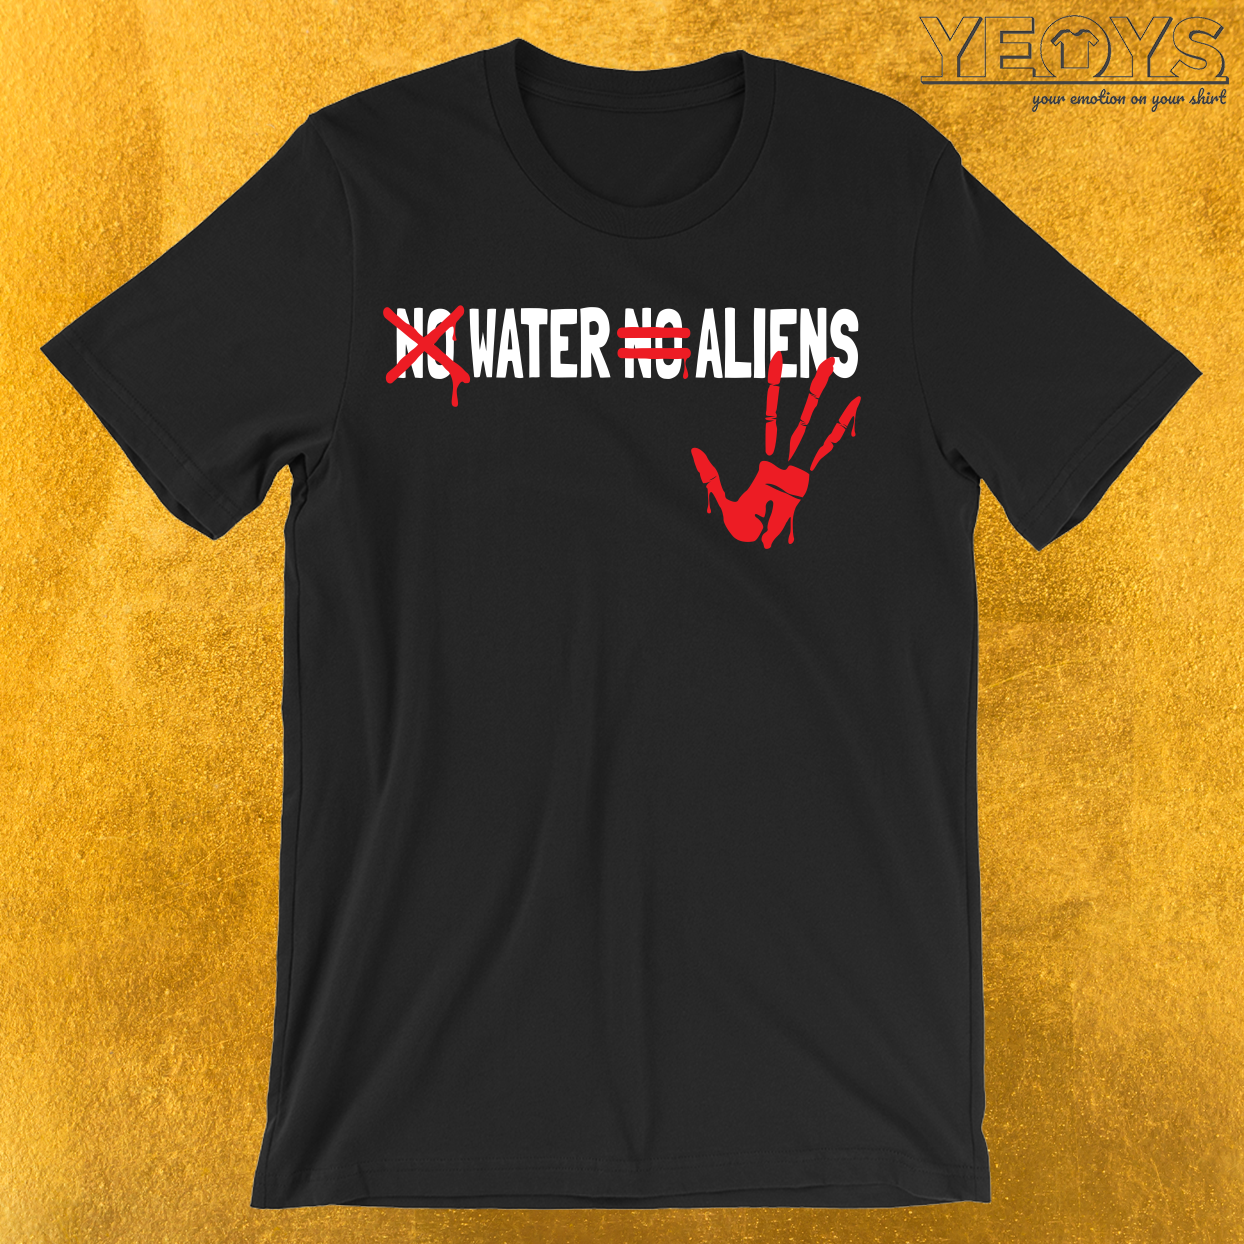 No Water No Aliens T-Shirt